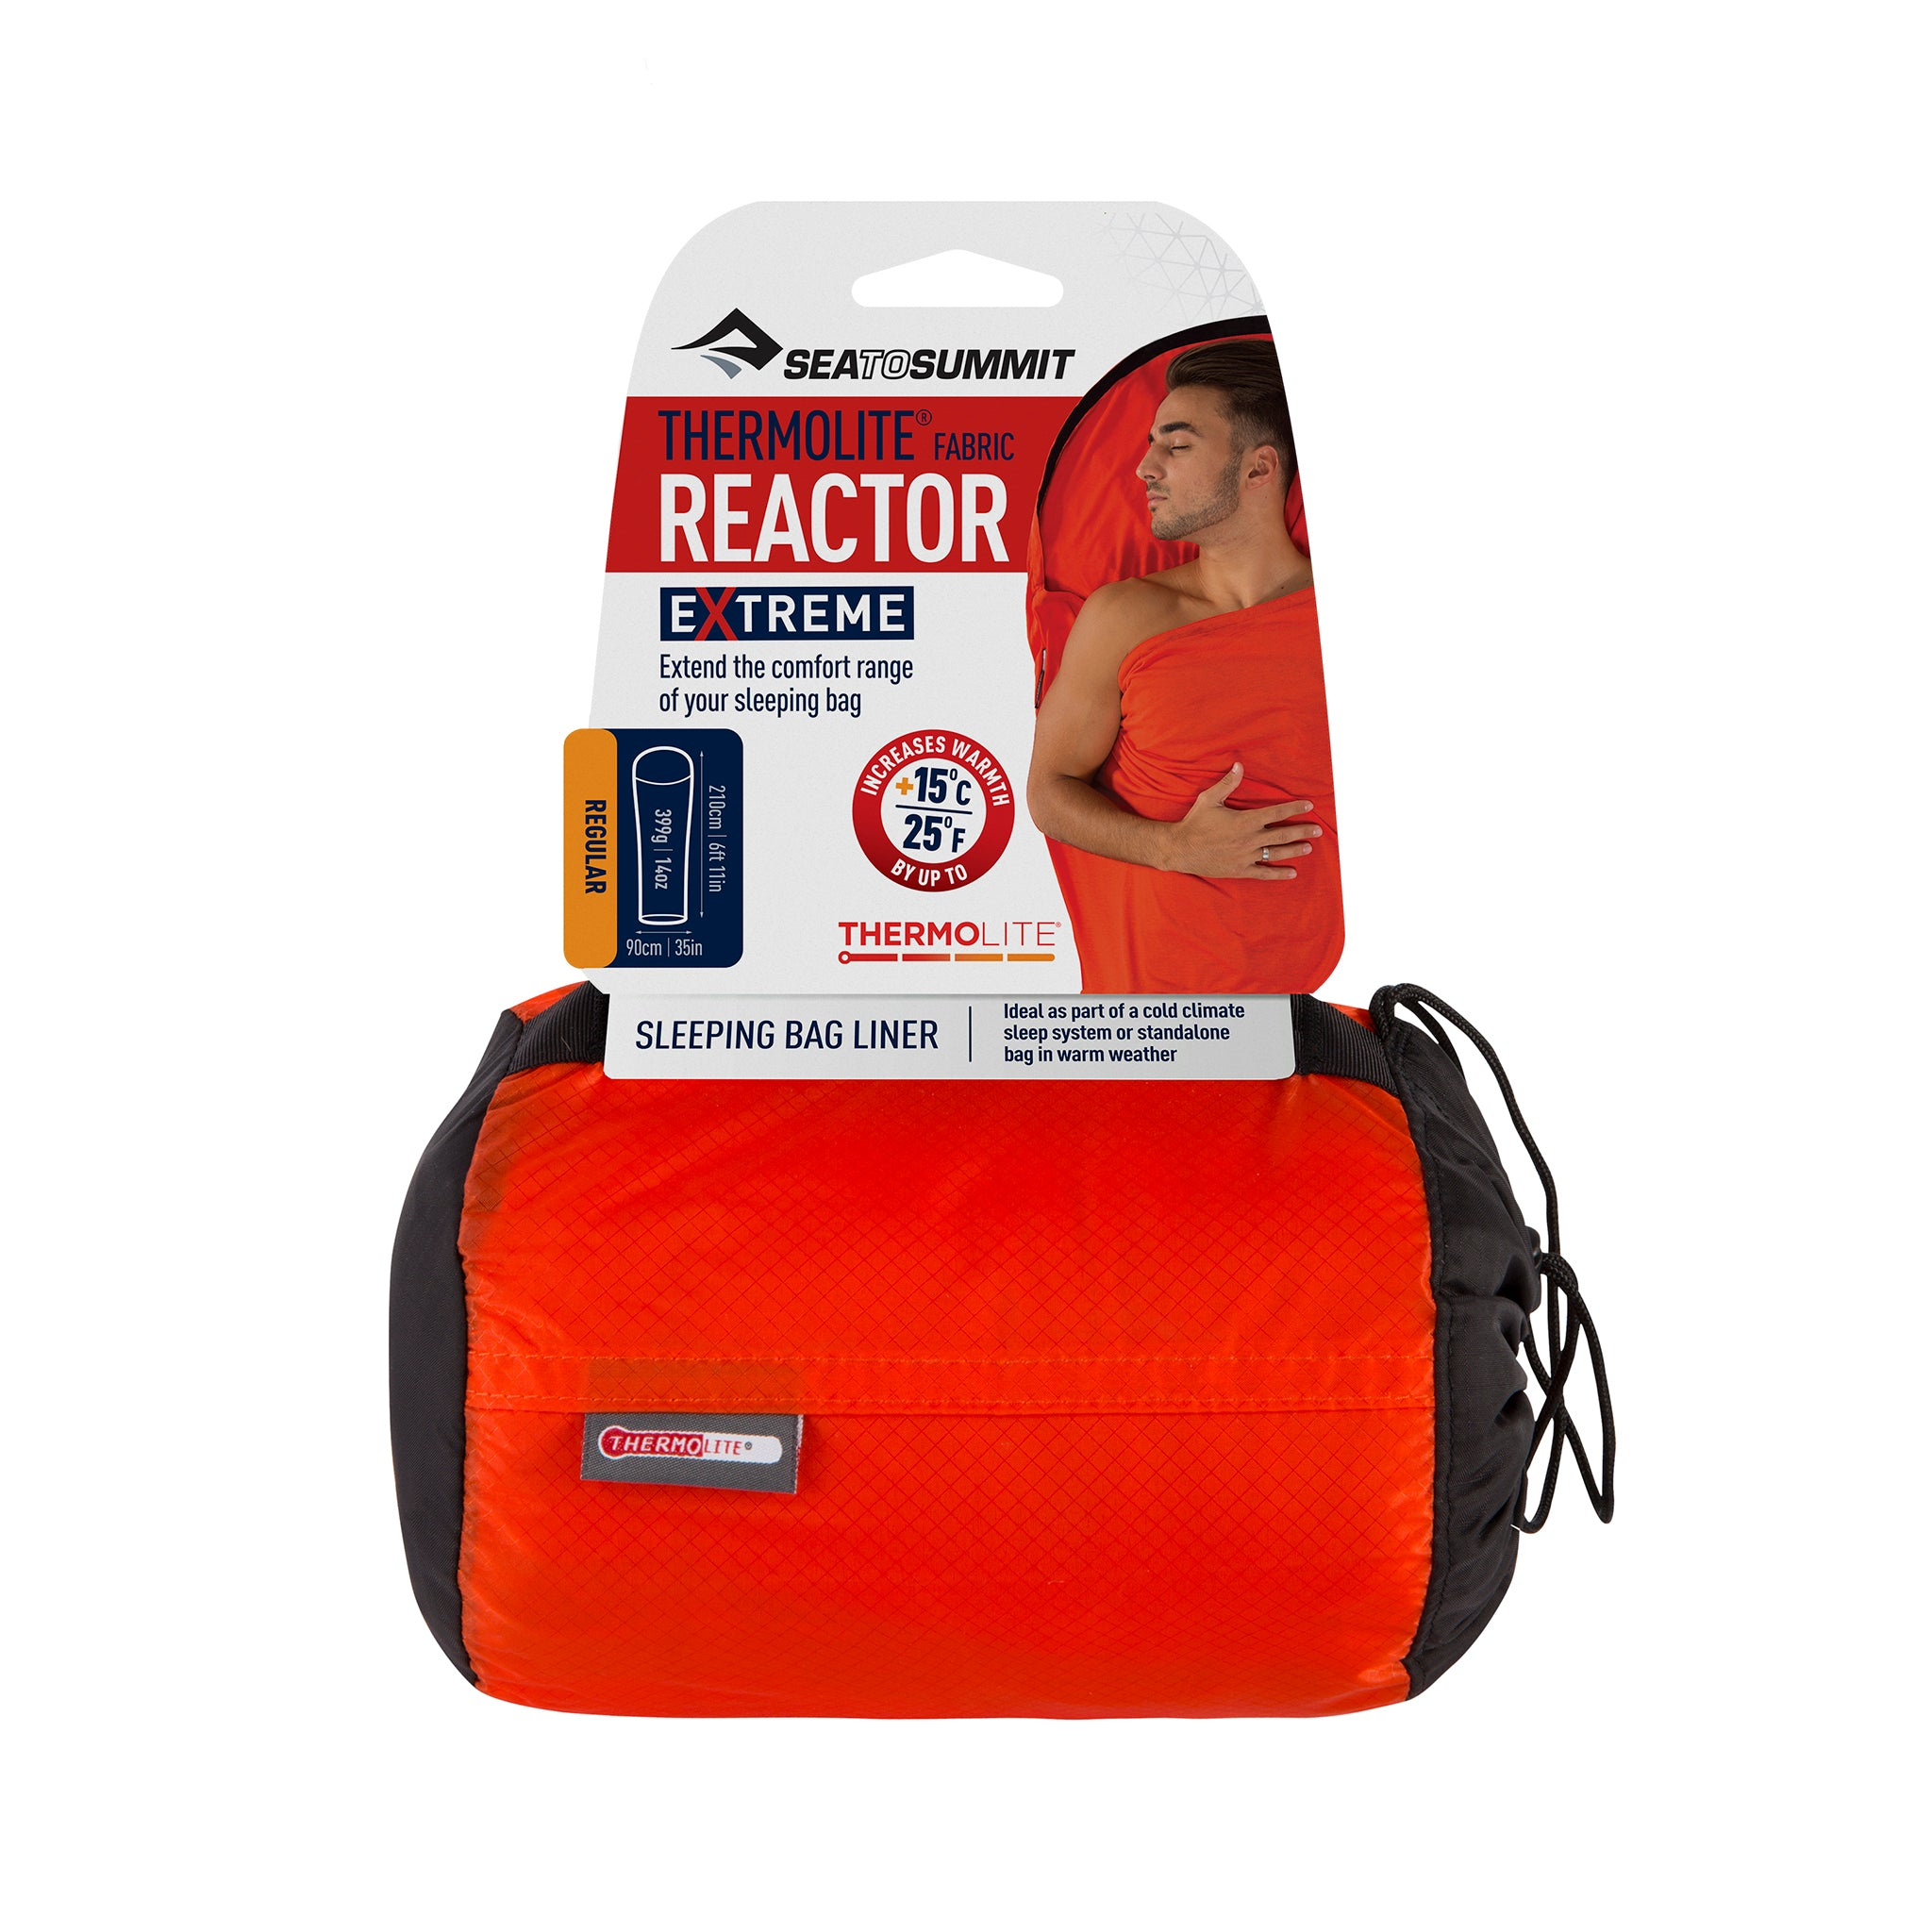 Reactor Extreme Liner (adds up to 25°F)